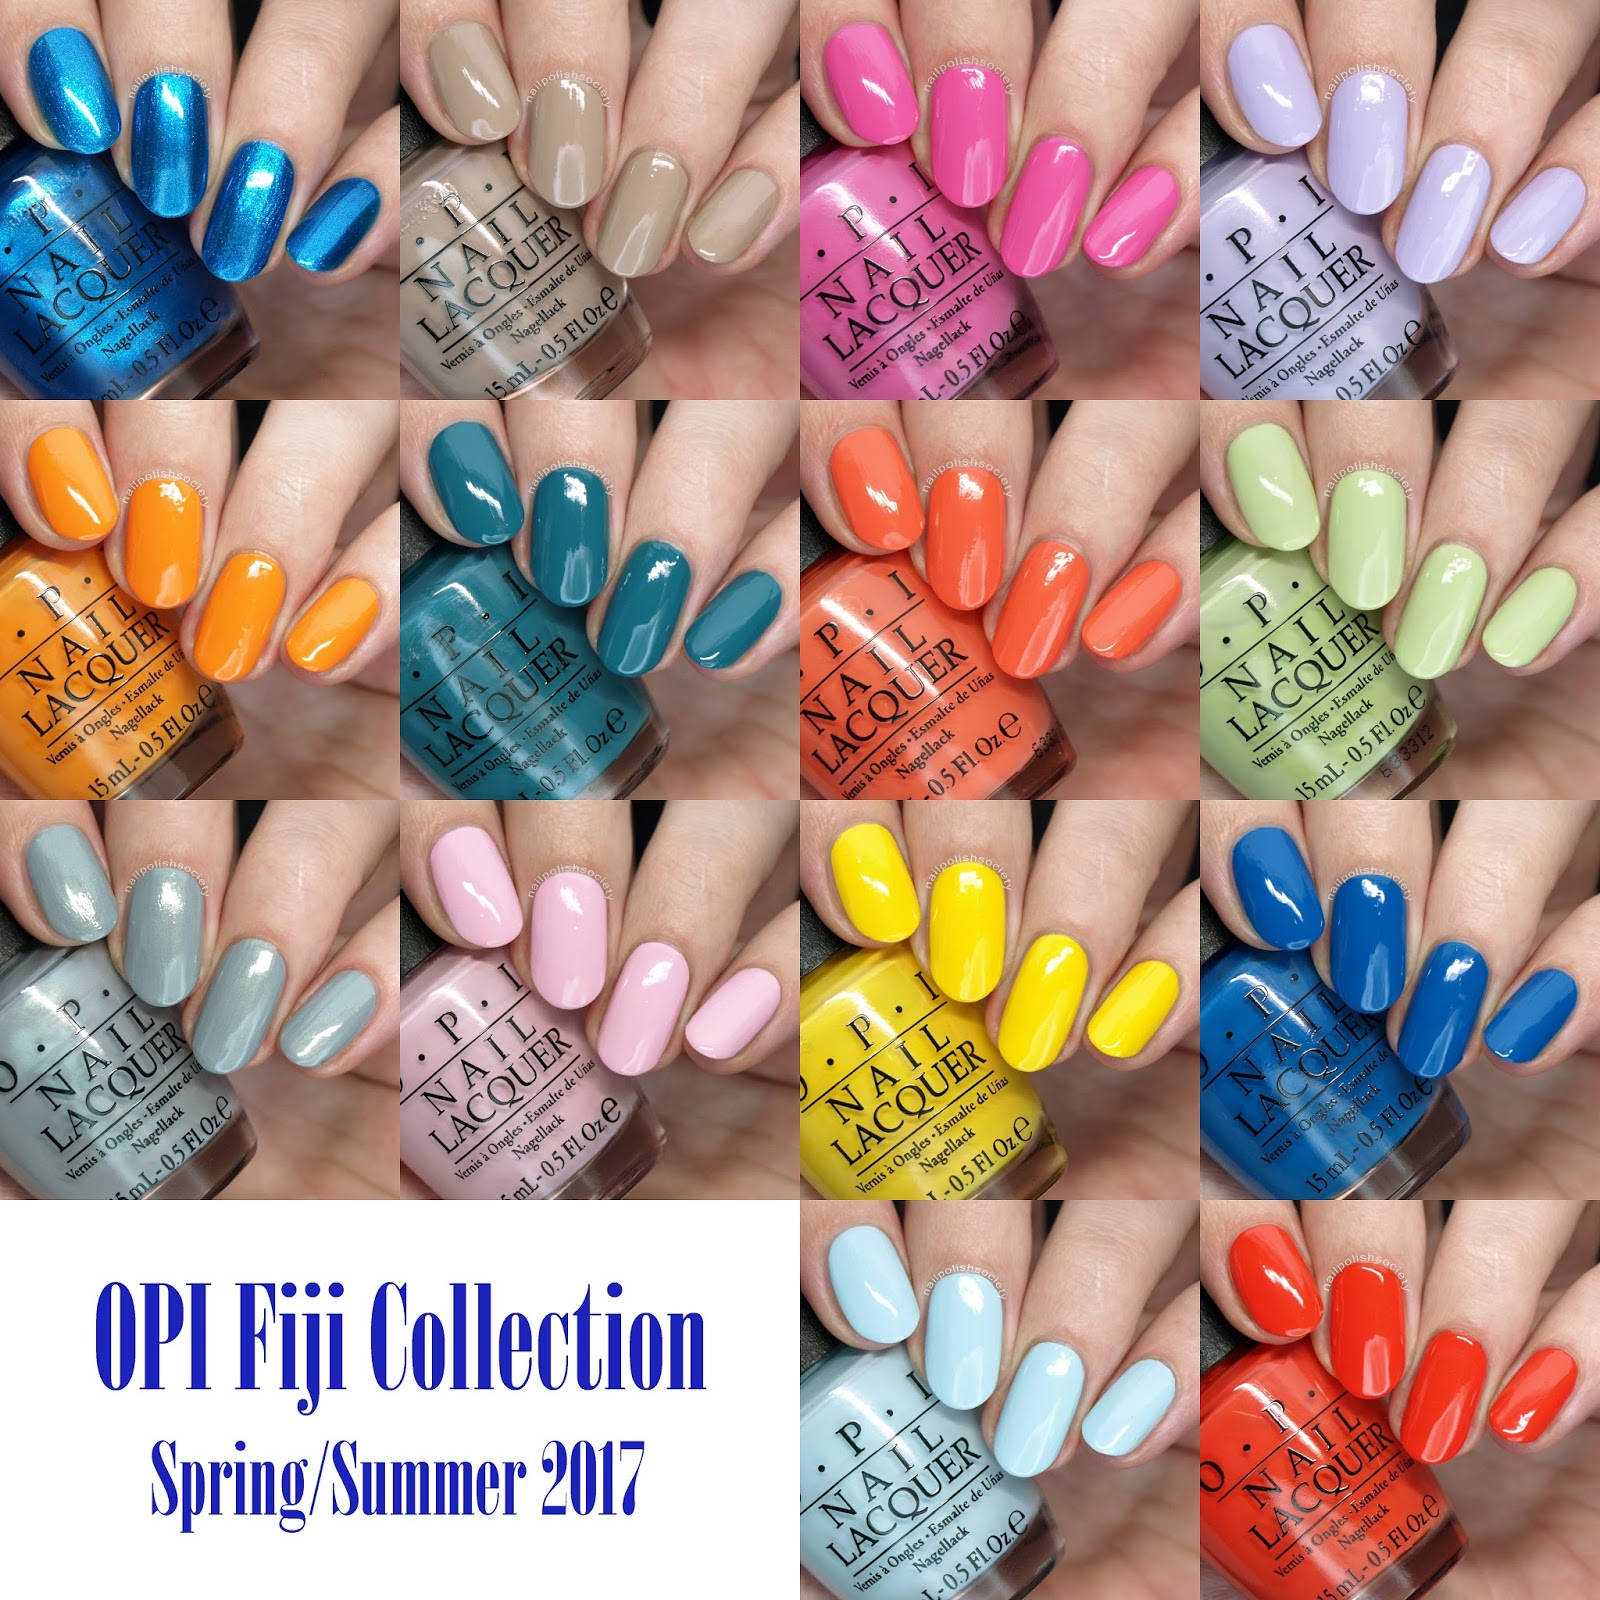 Nail Polish Colors Spring 2018 Opi: Nail Polish Society: OPI Spring/Summer 2017 Fiji Collection